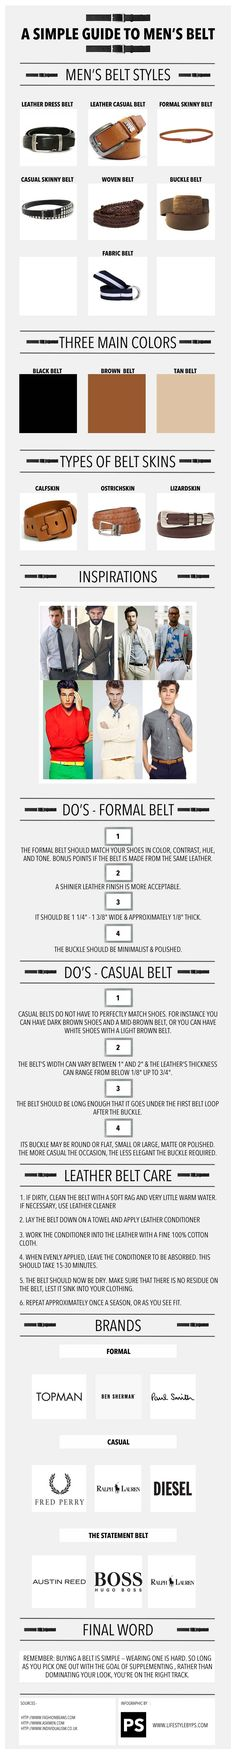 A Simple Guide to Mens Belt - Mens belt types - Simple Belt Guide. The Infographic below includes following. 1. Mens belt styles 2. Three main